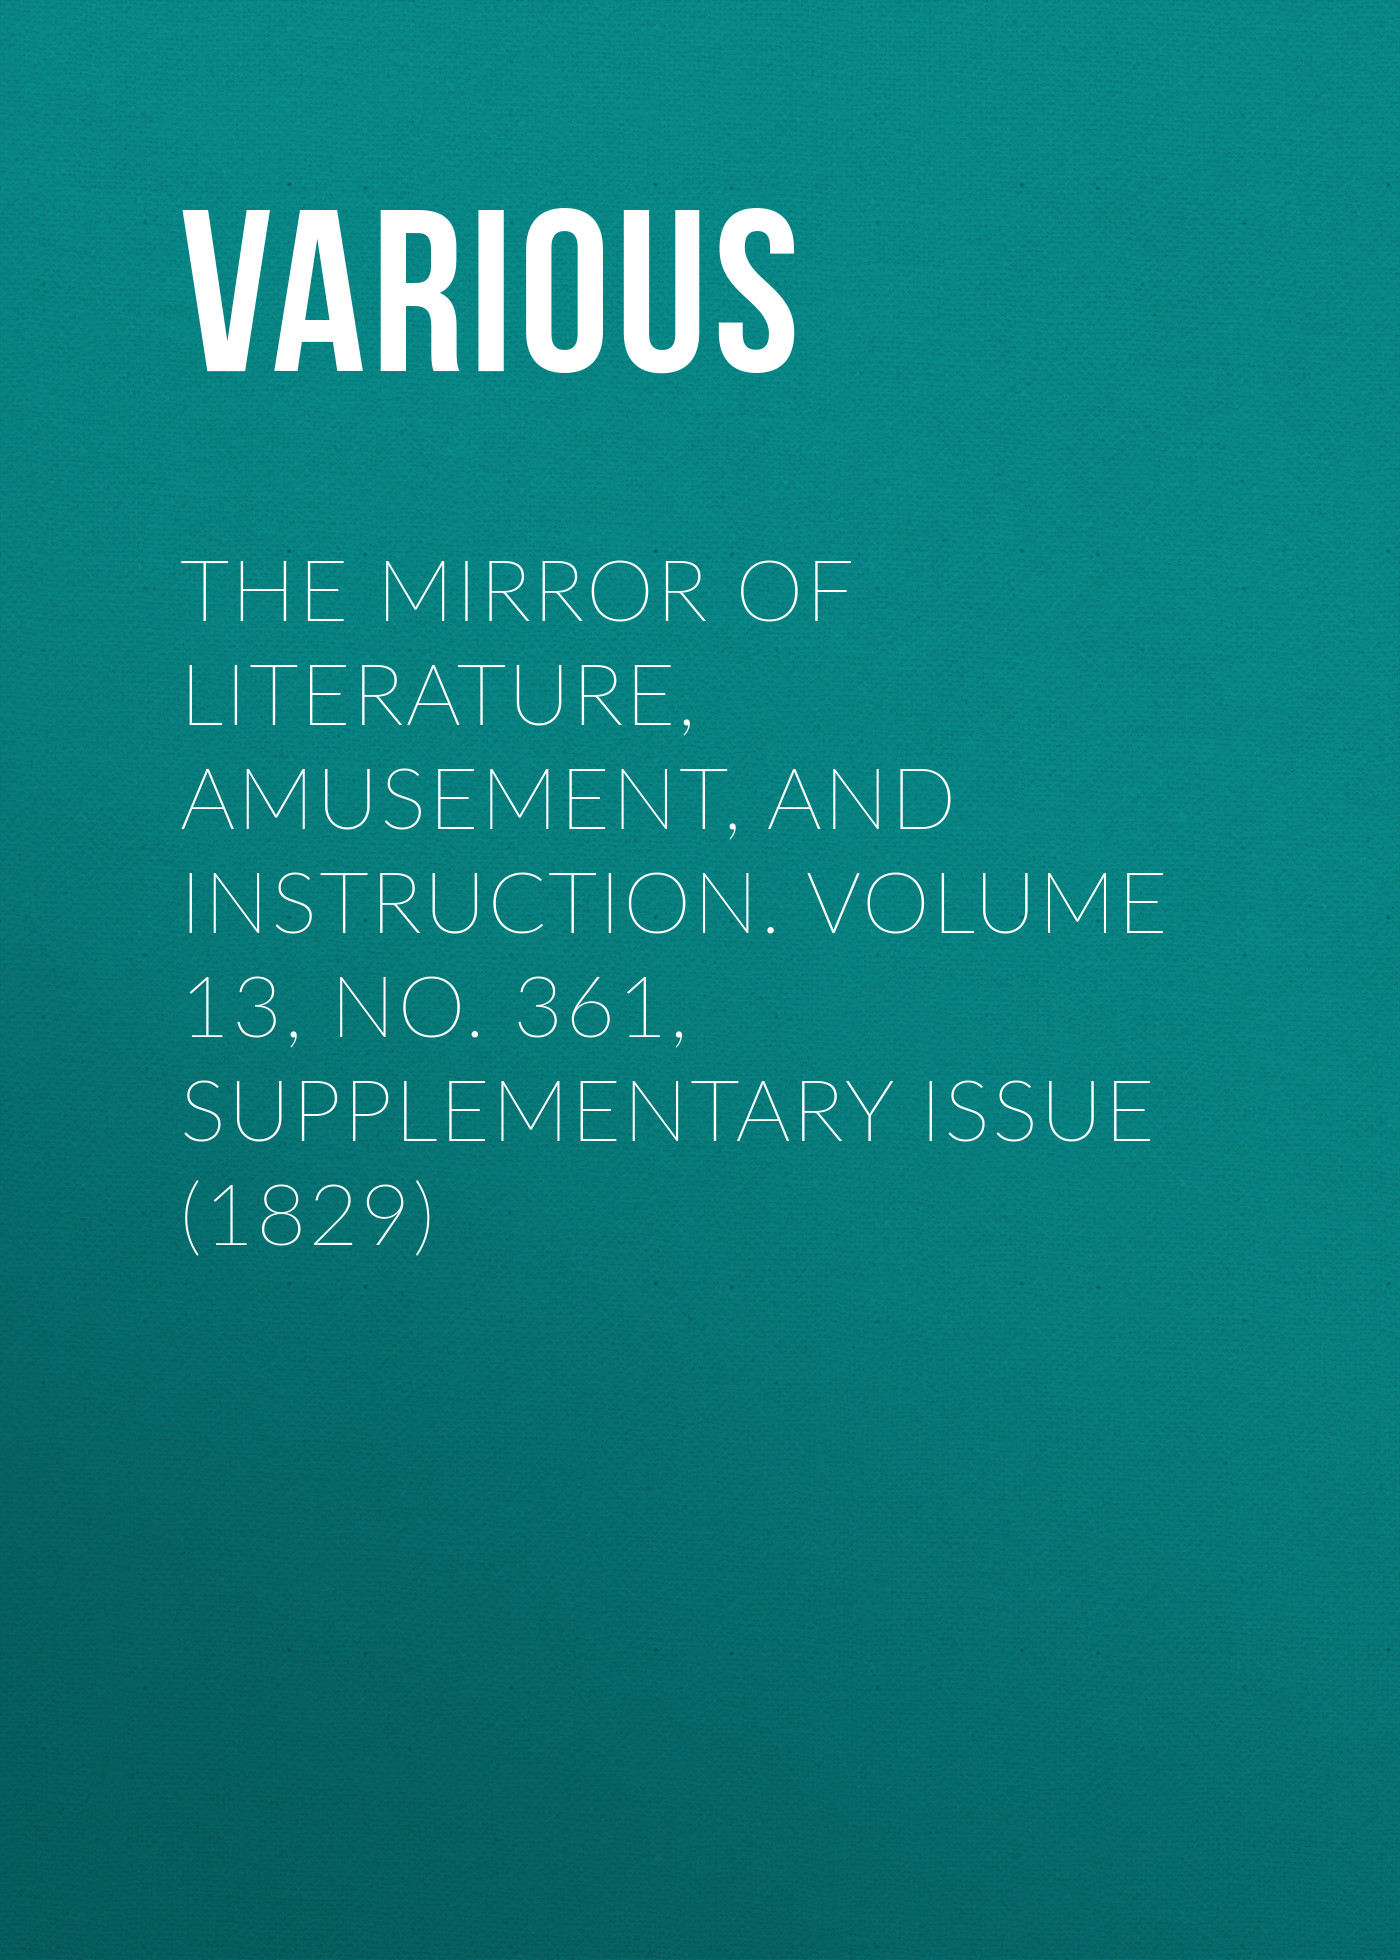 Various The Mirror of Literature, Amusement, and Instruction. Volume 13, No. 361, Supplementary Issue (1829) the yale literary magazine volume 54 issue 7